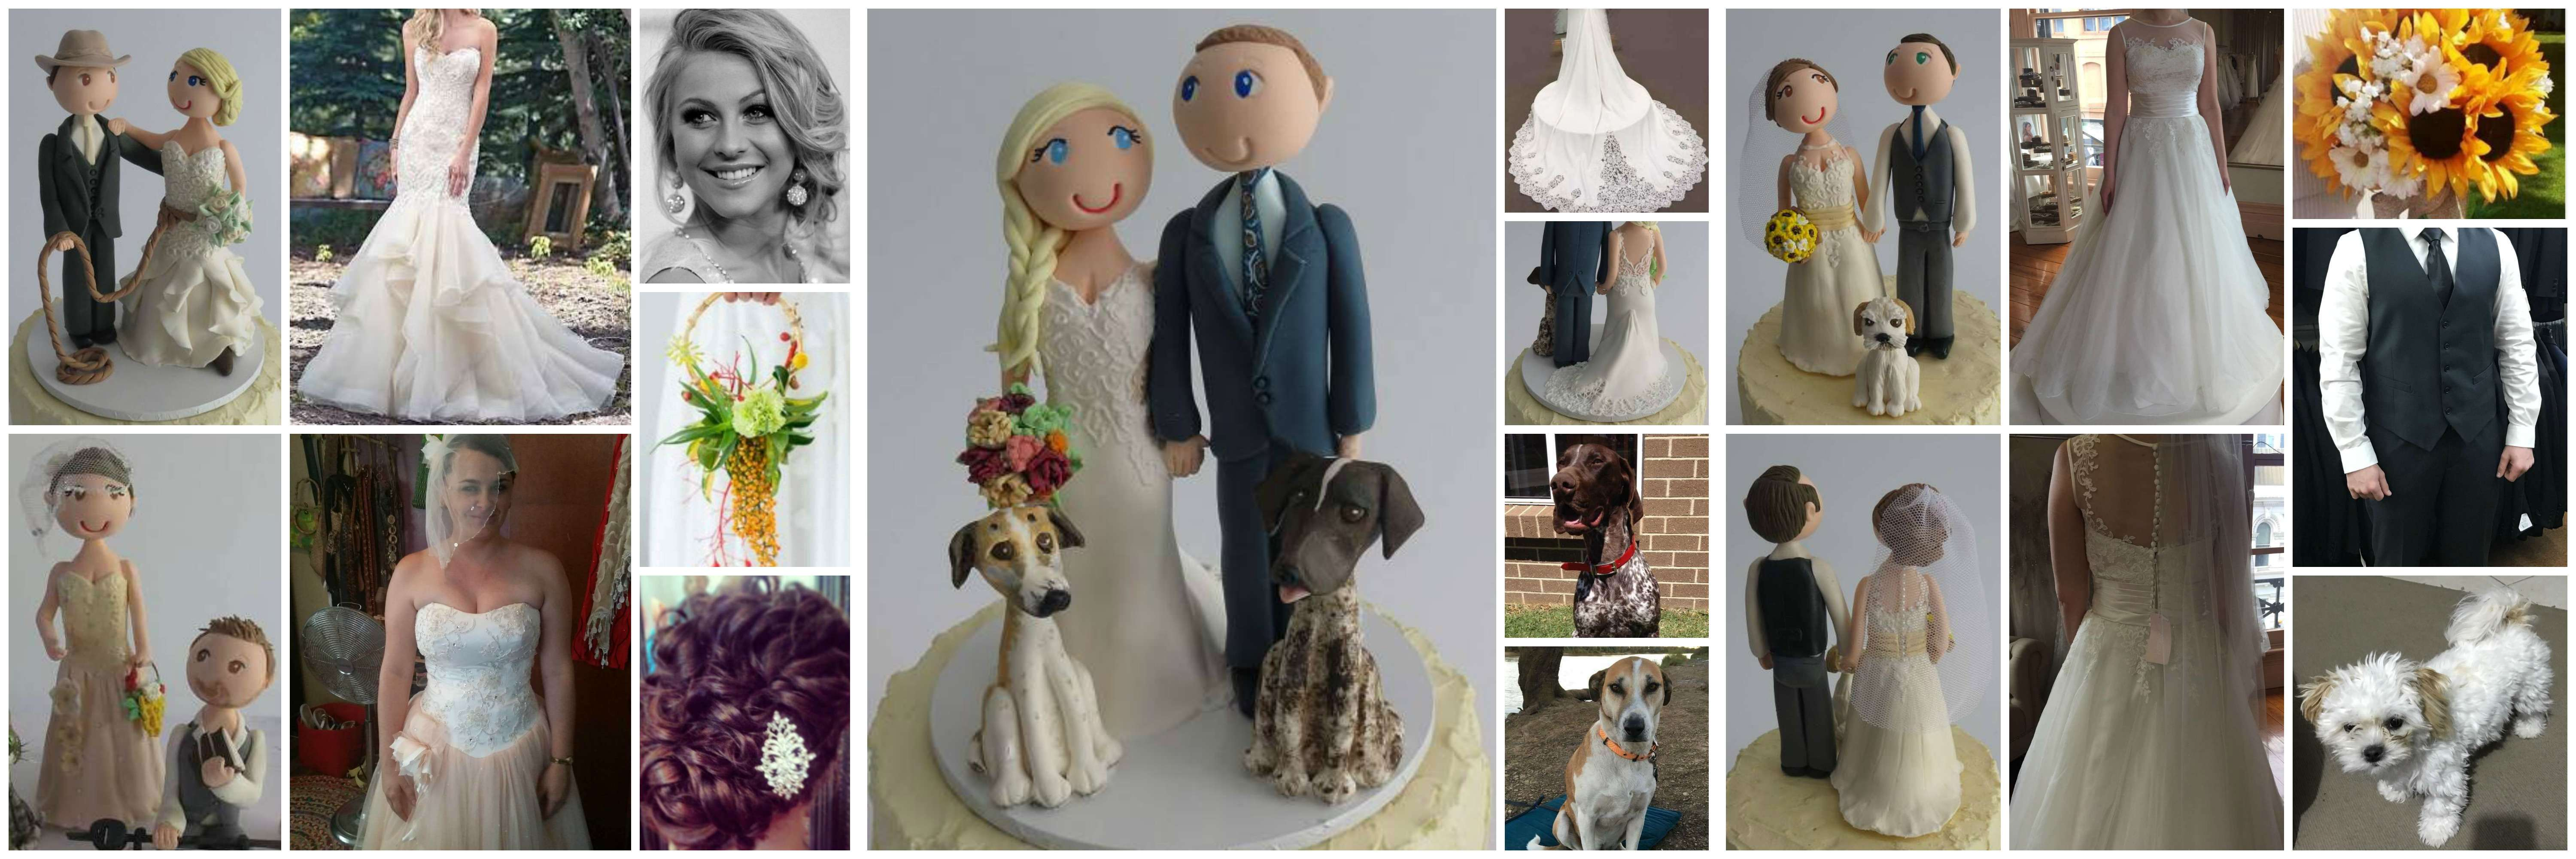 Personalised Bride and Groom figurines Cake Toppers image 1